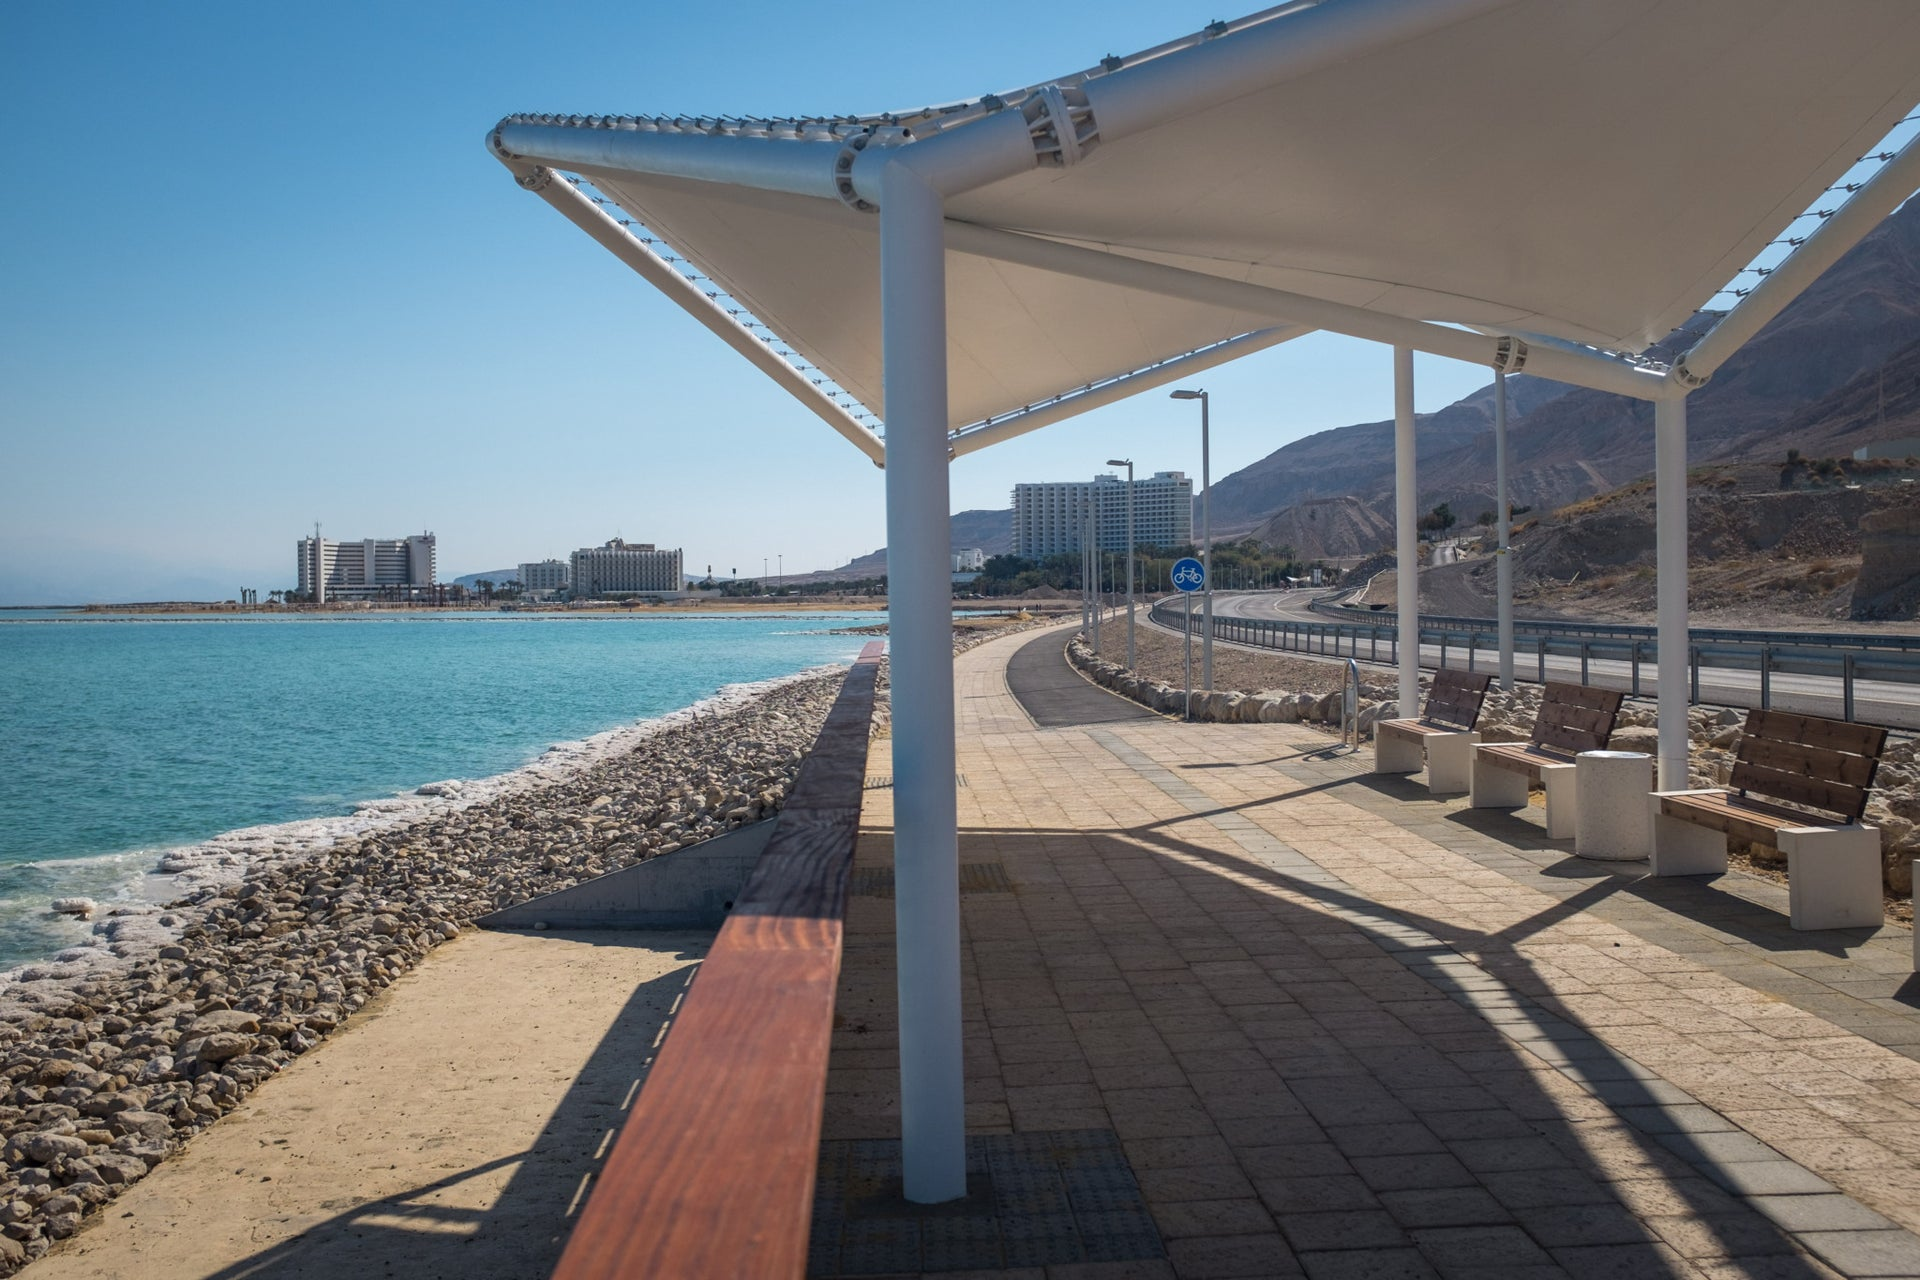 The promenade at Ein Bokek links it to Hamei Zohar.